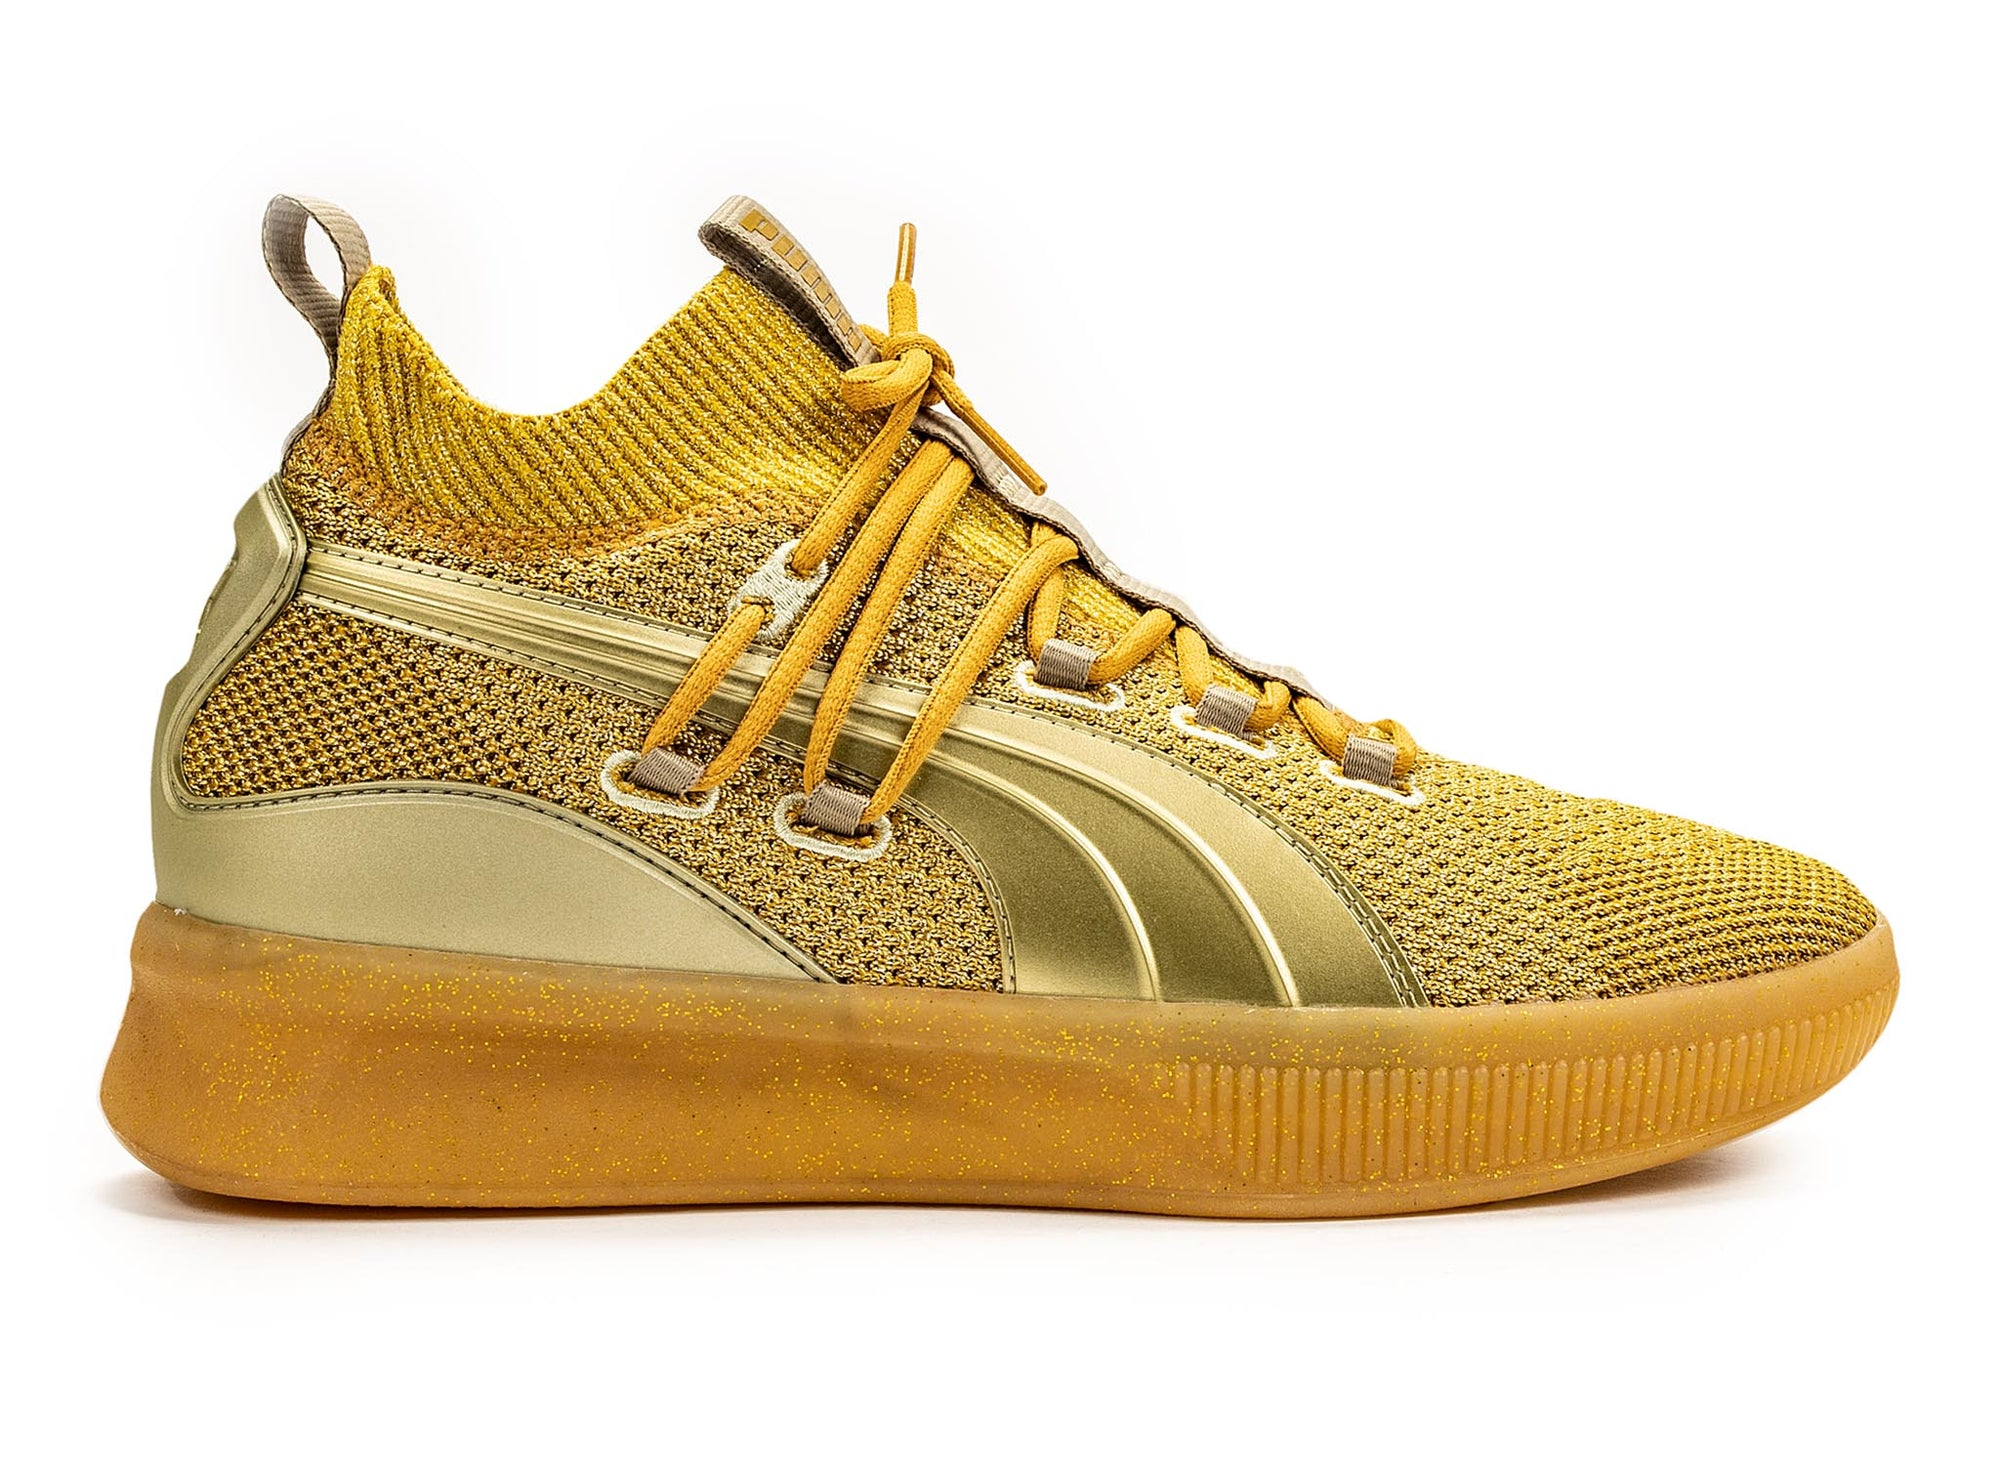 PUMA Clyde court metallic gold